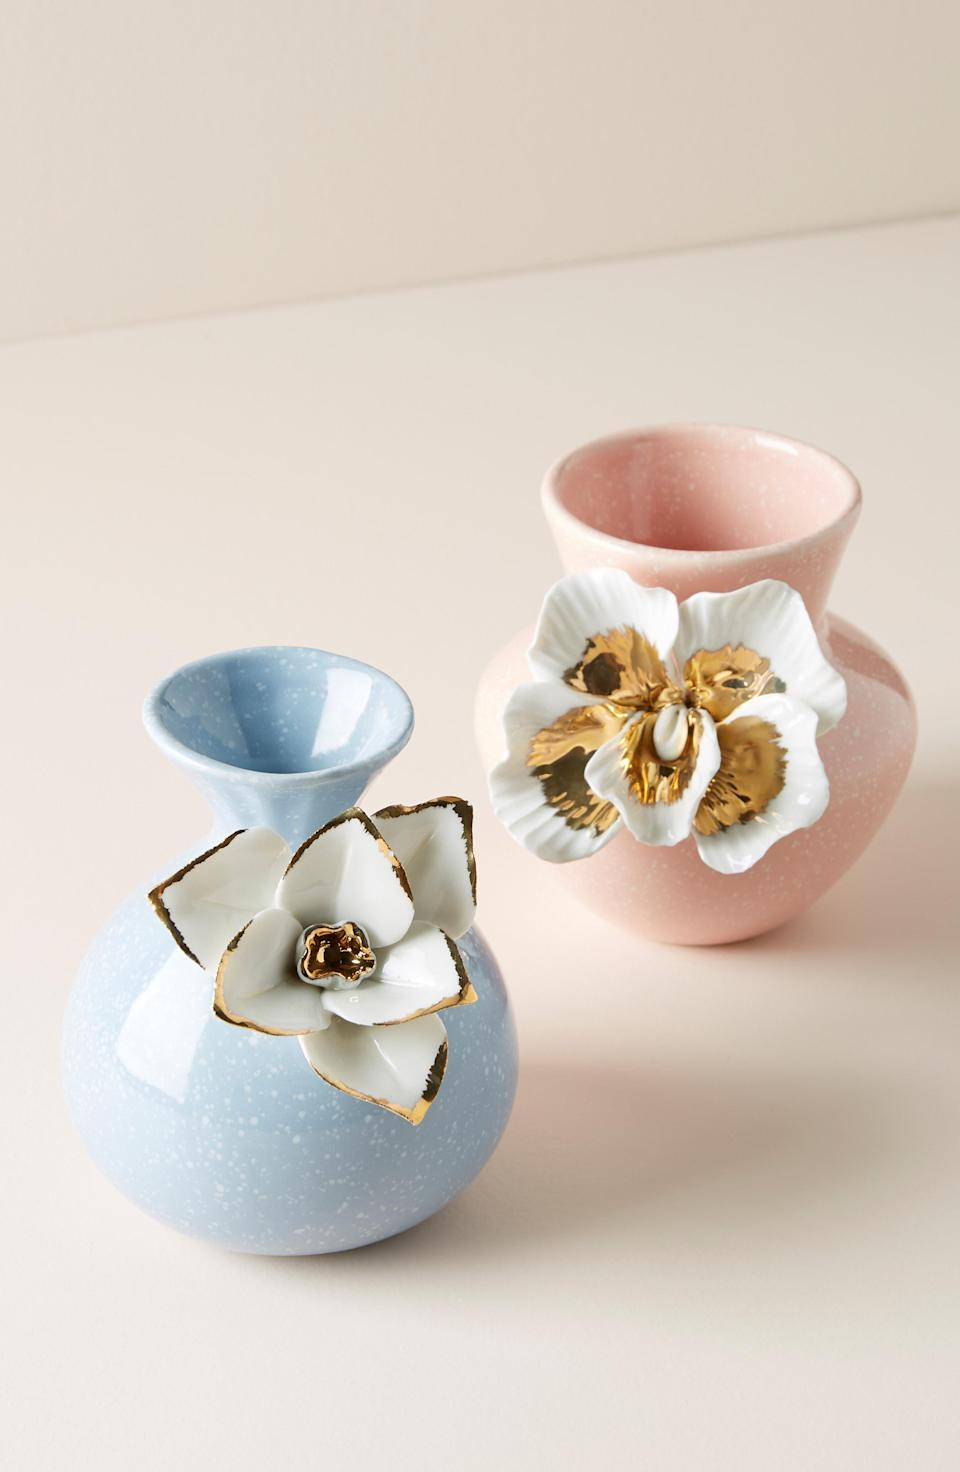 "<p><strong>Anthropologie</strong></p><p>nordstrom.com</p><p><strong>$28.00</strong></p><p><a href=""https://shop.nordstrom.com/s/anthropologie-bloom-vase/5100766"" rel=""nofollow noopener"" target=""_blank"" data-ylk=""slk:SHOP NOW"" class=""link rapid-noclick-resp"">SHOP NOW</a></p><p>Now she'll have the most beautiful place to hold her <a href=""https://www.womansday.com/relationships/dating-marriage/g744/flower-meanings/"" rel=""nofollow noopener"" target=""_blank"" data-ylk=""slk:Valentine's Day flowers"" class=""link rapid-noclick-resp"">Valentine's Day flowers</a> this year.</p>"